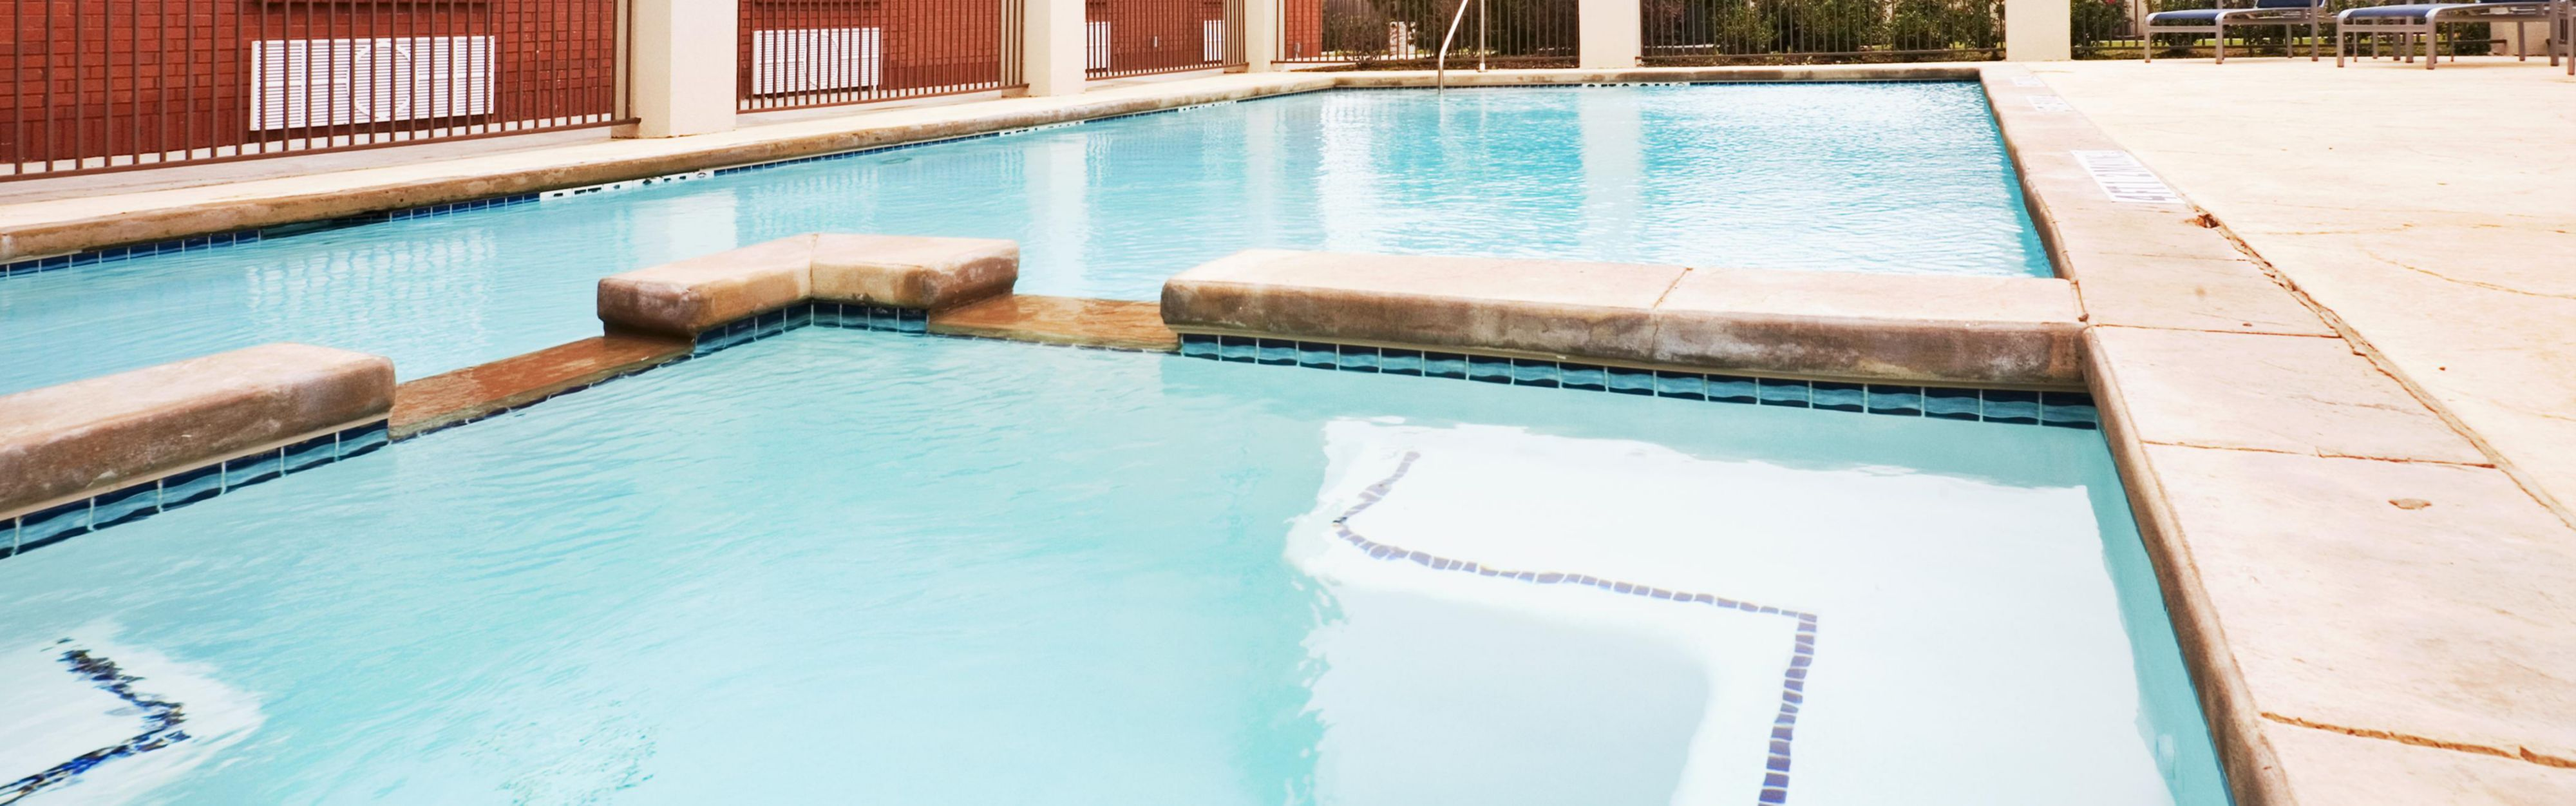 Motels In Royse City Texas